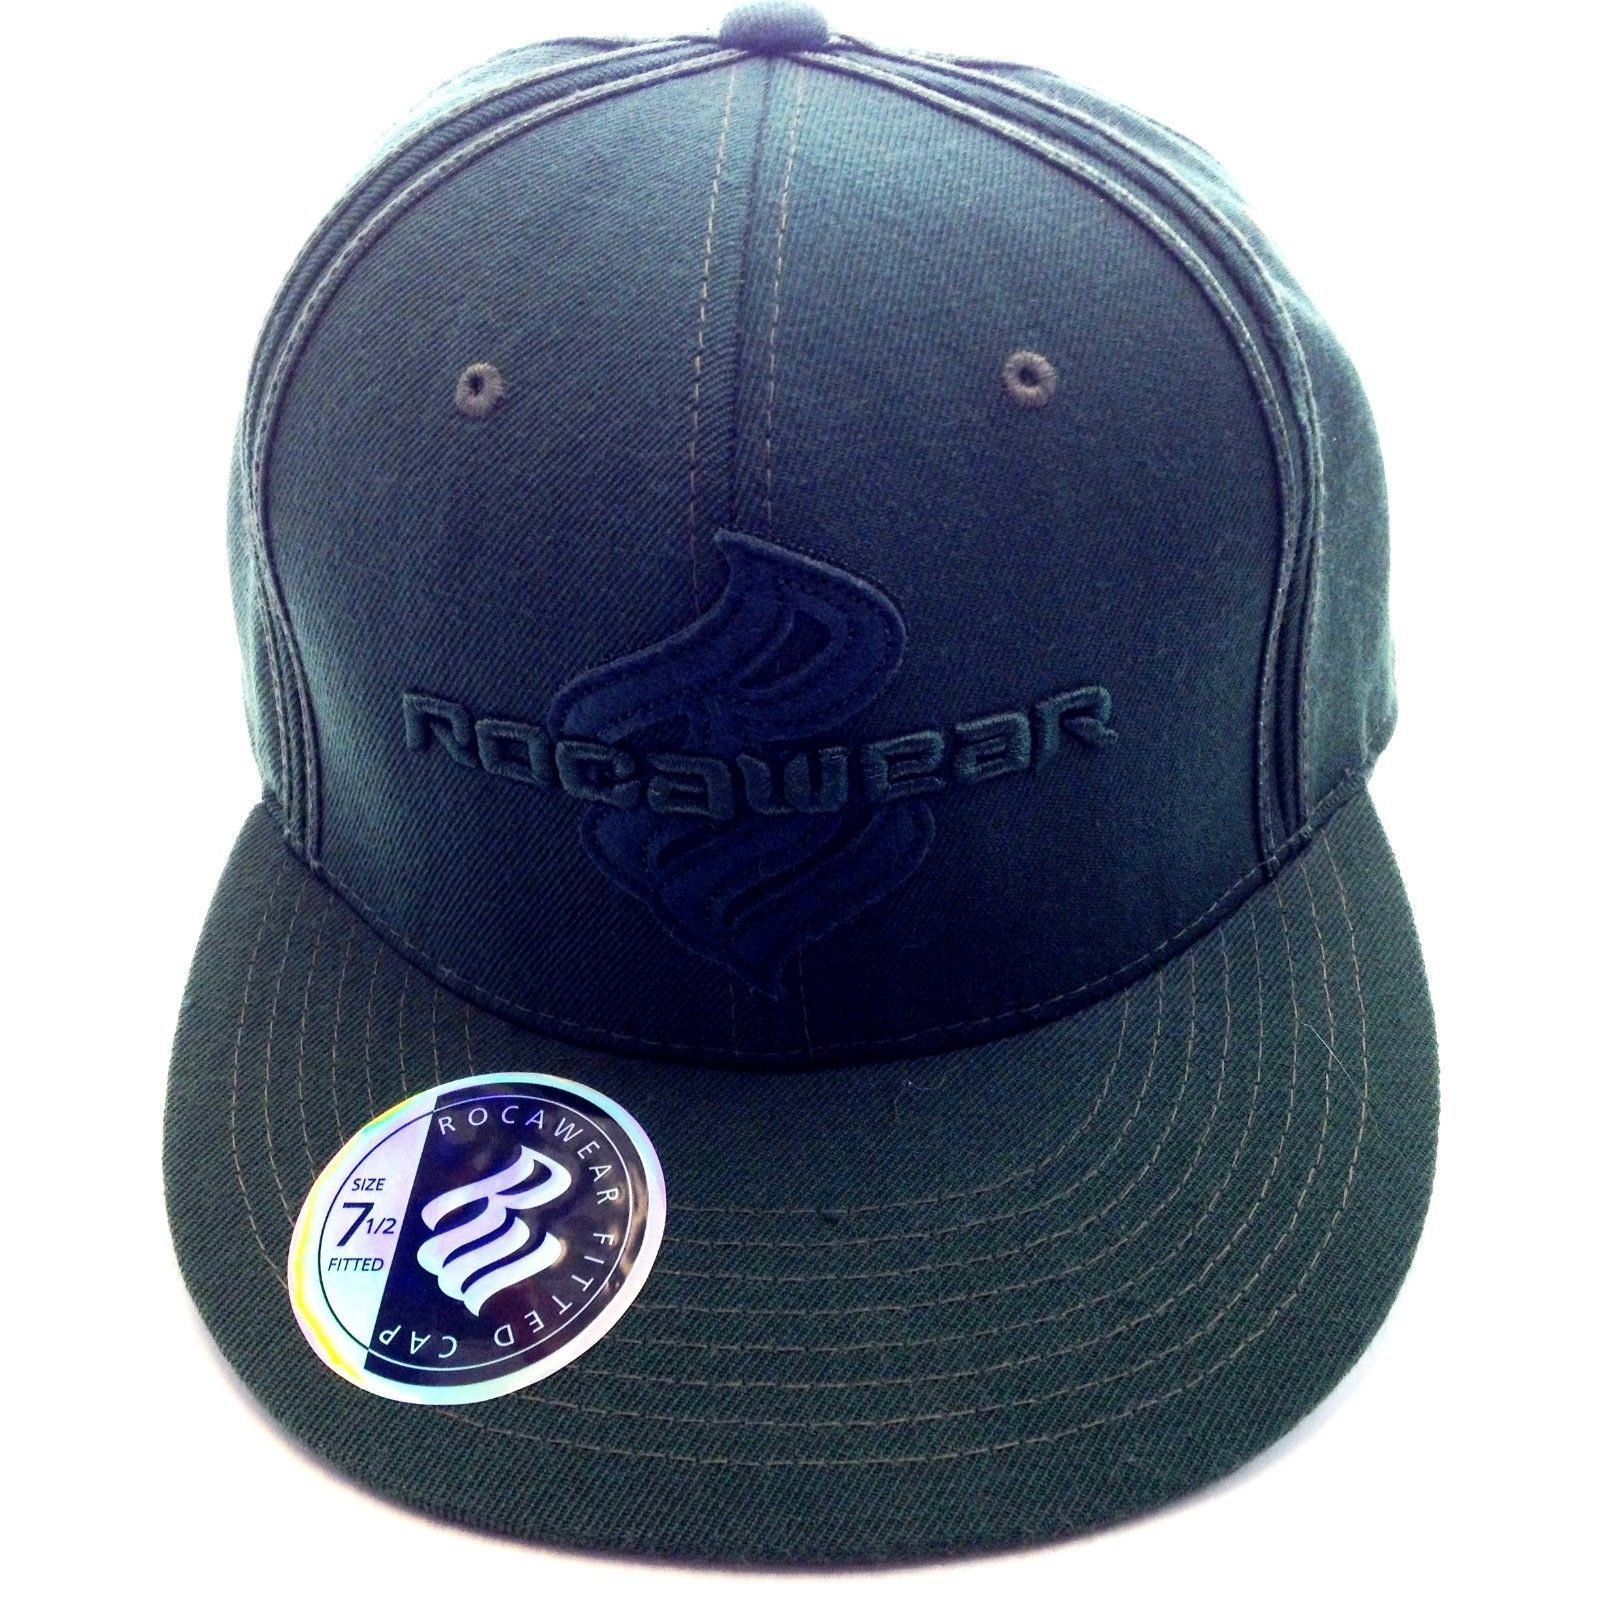 Primary image for ROCAWEAR MEN'S, BASEBALL CAP, RW F357 PACKER GREEN